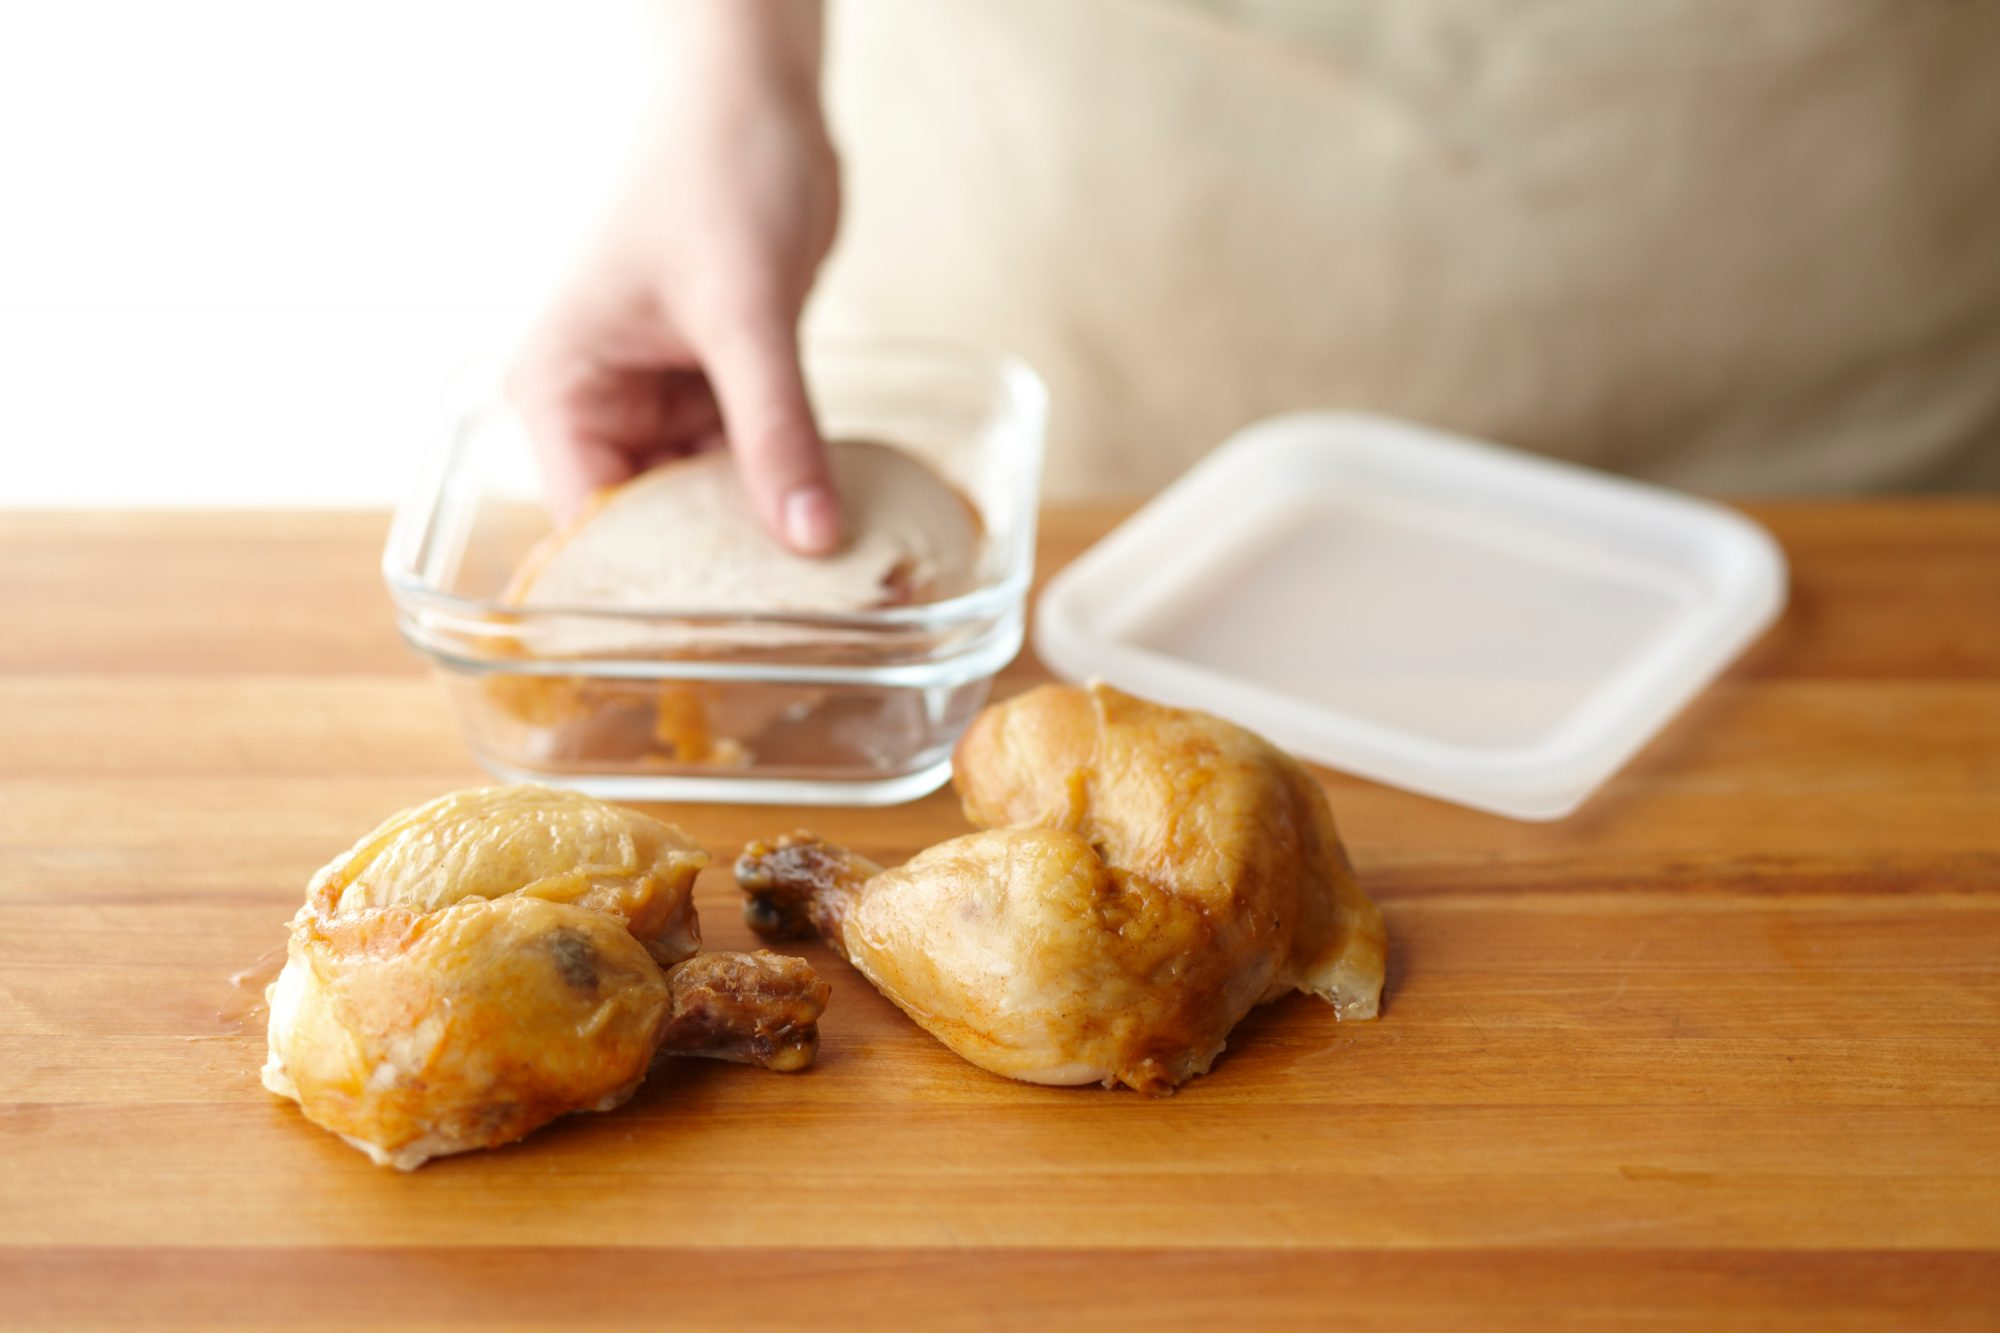 person placing cooked chicken in glass container